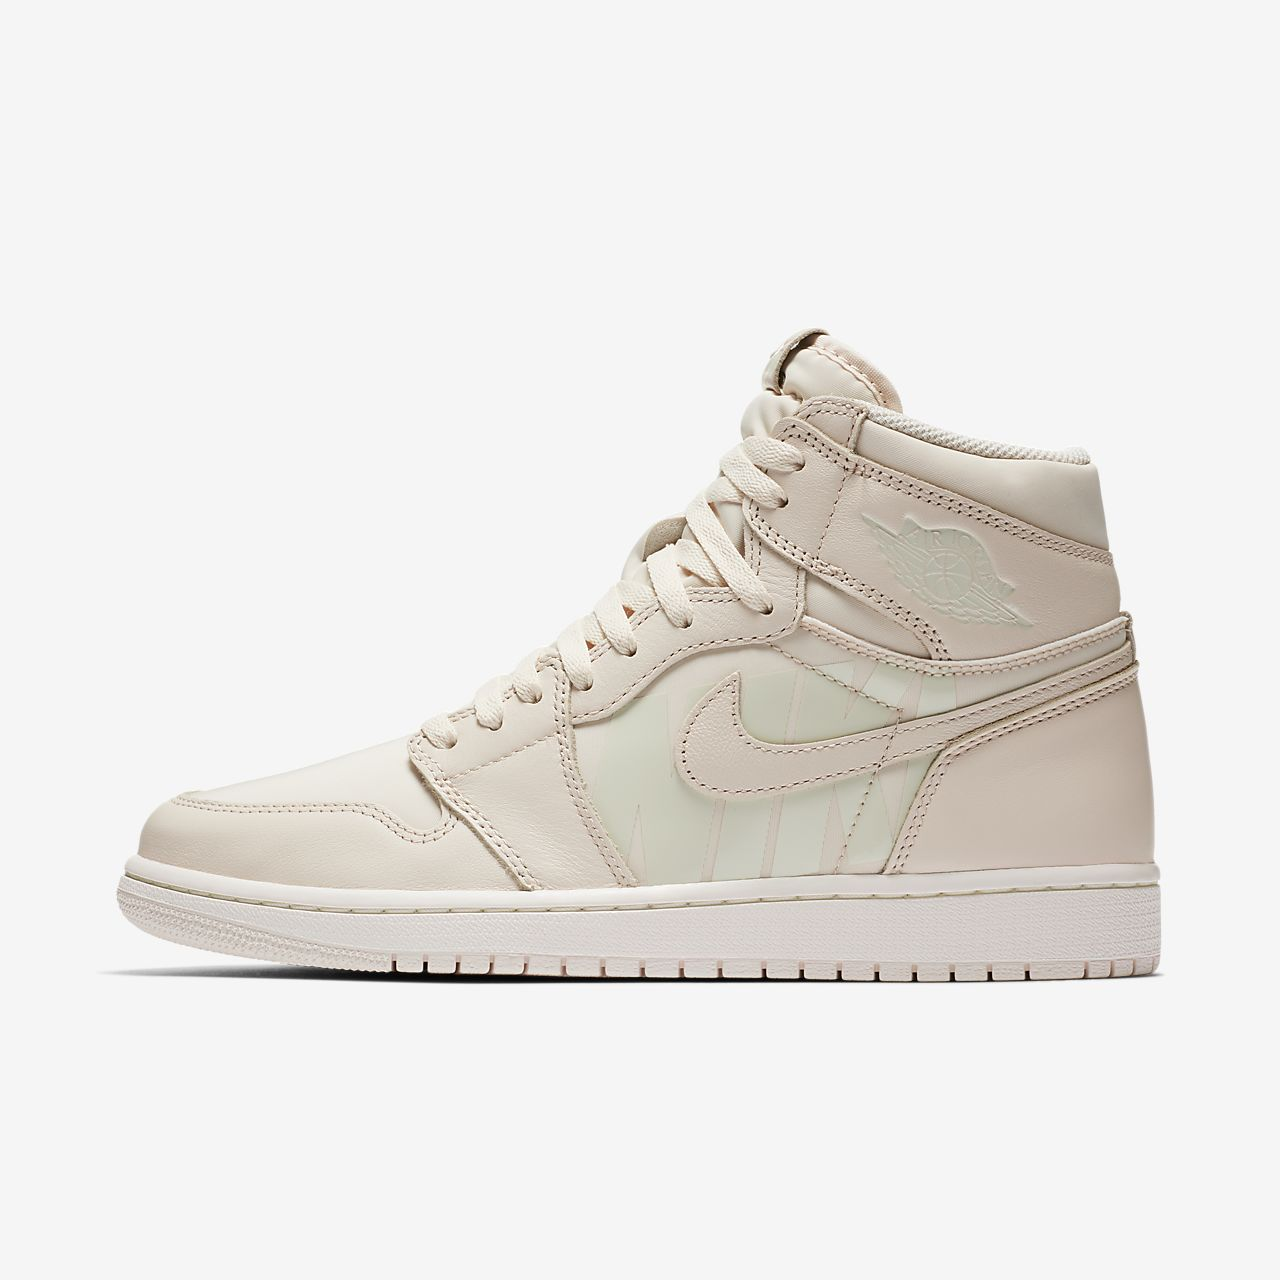 e79f39eaeccc37 Air Jordan 1 Retro High OG Shoe. Nike.com